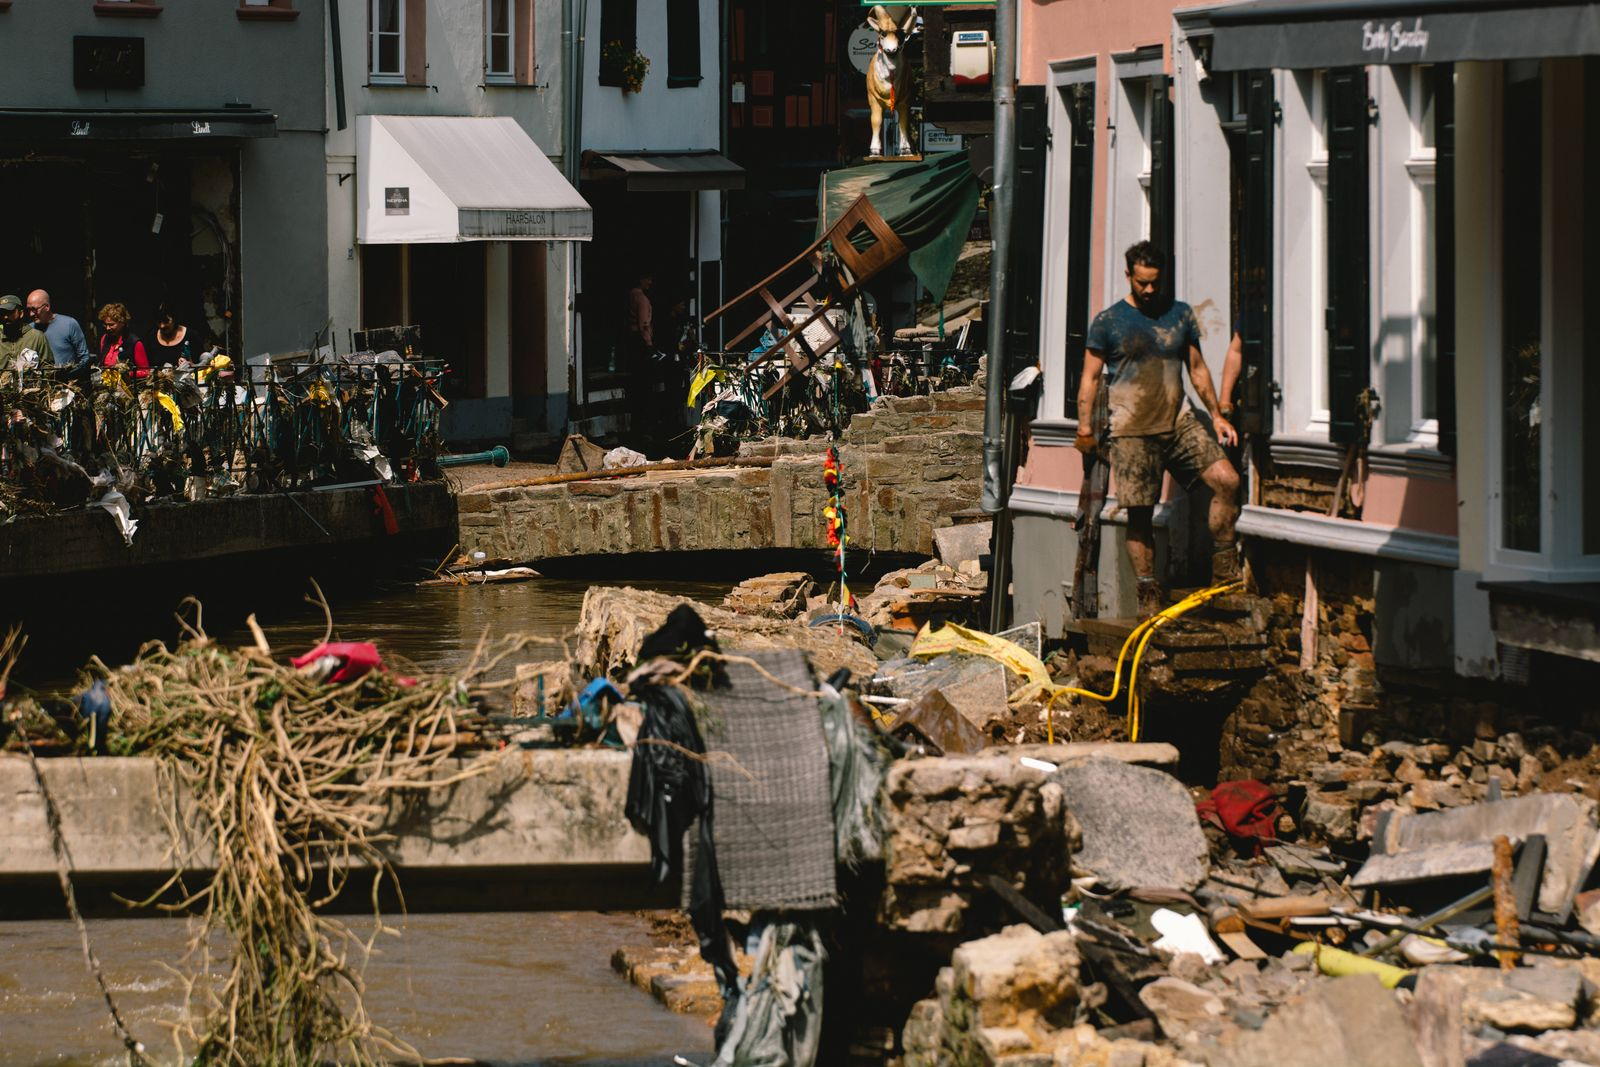 Flood In Iversheim And Bad Muenstereifel people clean up the debris in the city center of Bad Muenstereifel, Germany on